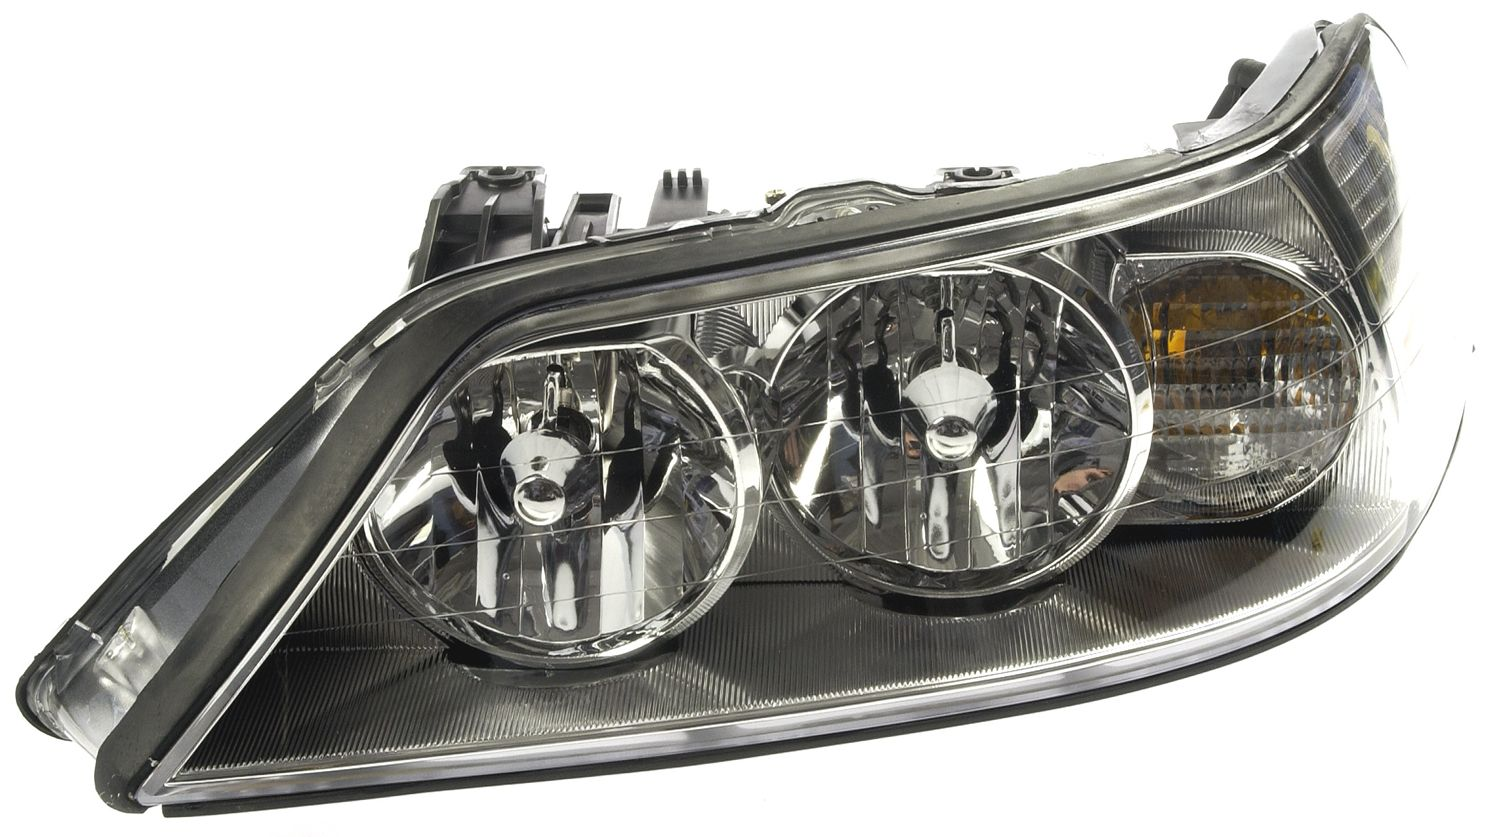 2004 Lincoln Town Car Headlight Embly Rb 1591810